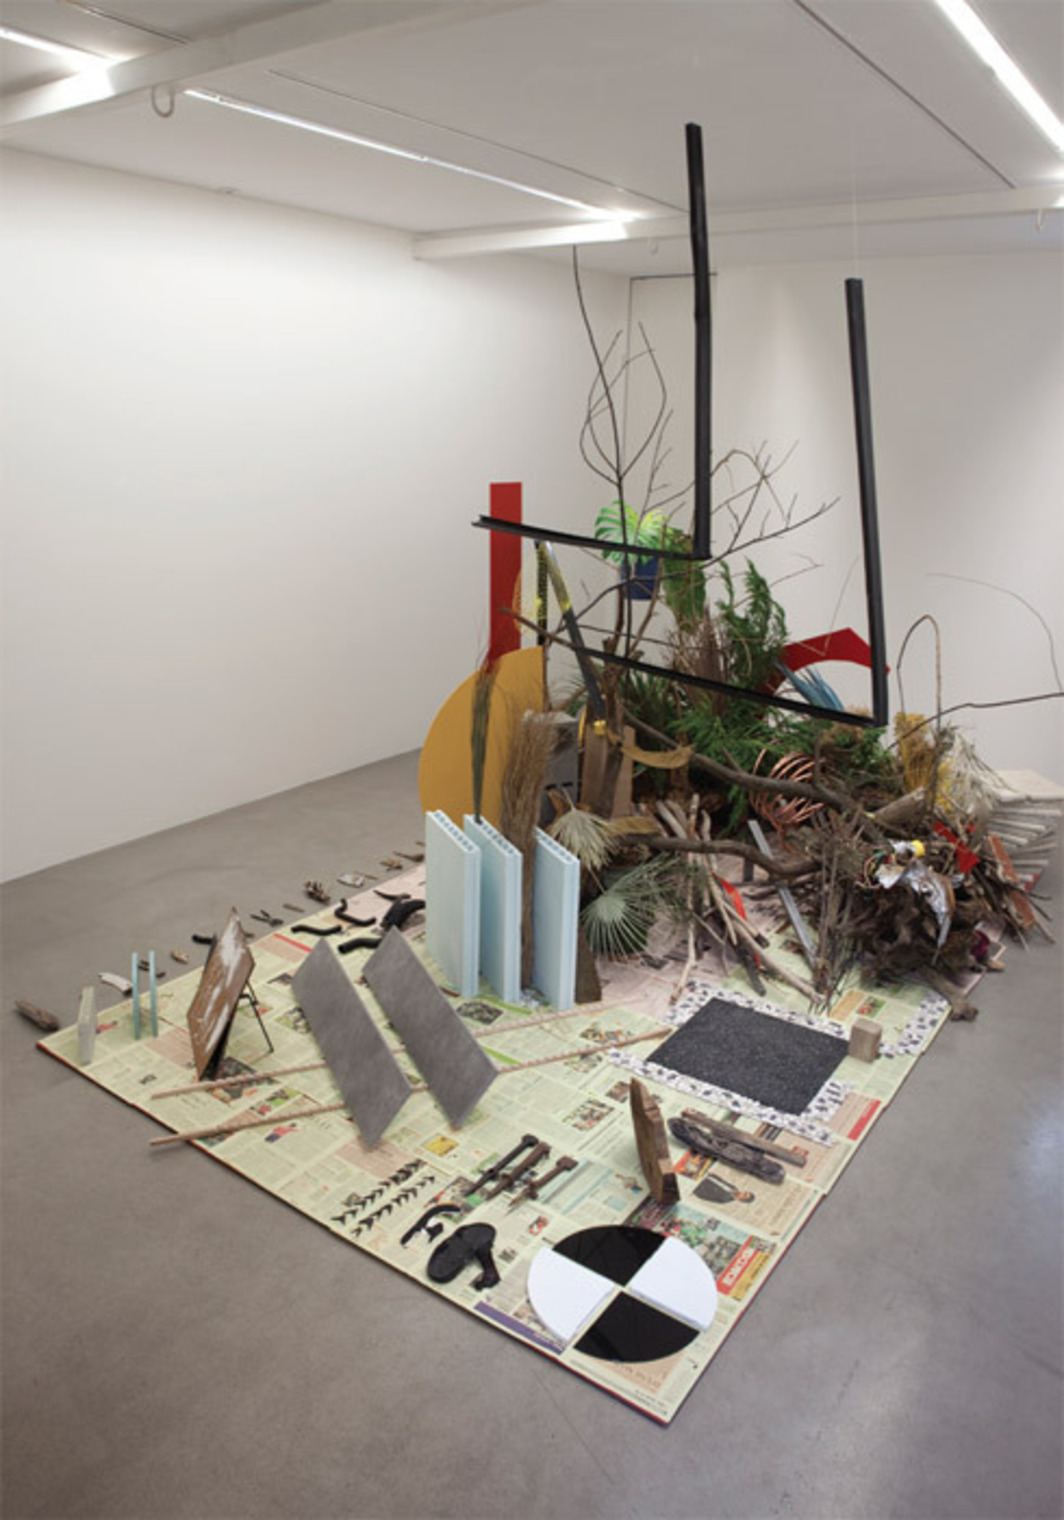 "Camille Henrot, ""Robinson Crusoé,"" Daniel Defoë, 2012, mixed media. Installation view. From the series ""Est-il possible d'être révolutionnaire et d'aimer les fleurs?"" (Is It Possible to Be a Revolutionary and Like Flowers?), 2011–12."